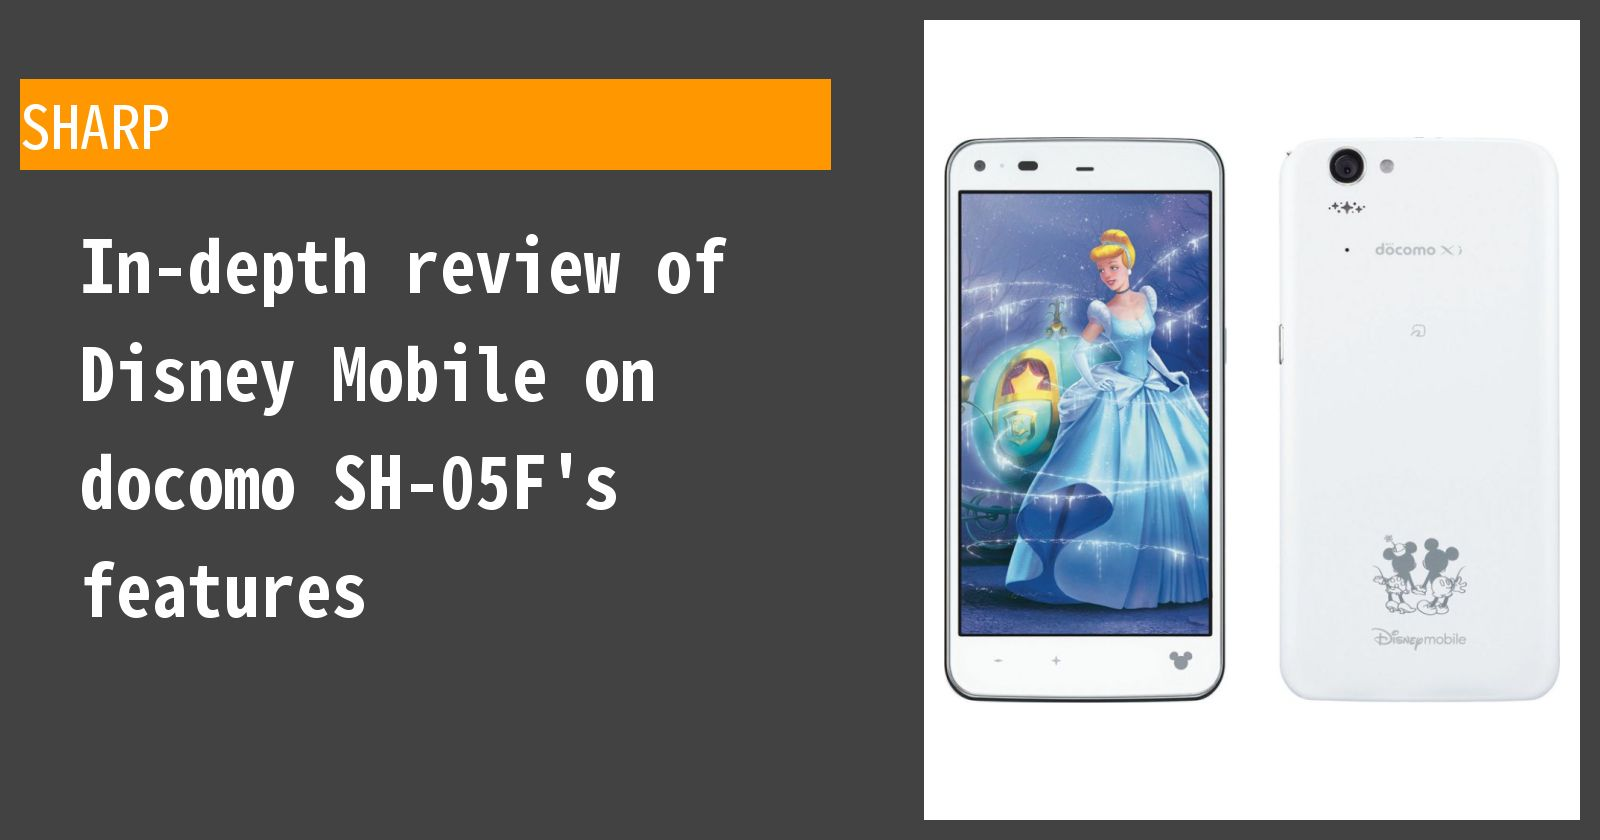 Review of Disney Mobile on docomo SH-05F  Thorough explanation of